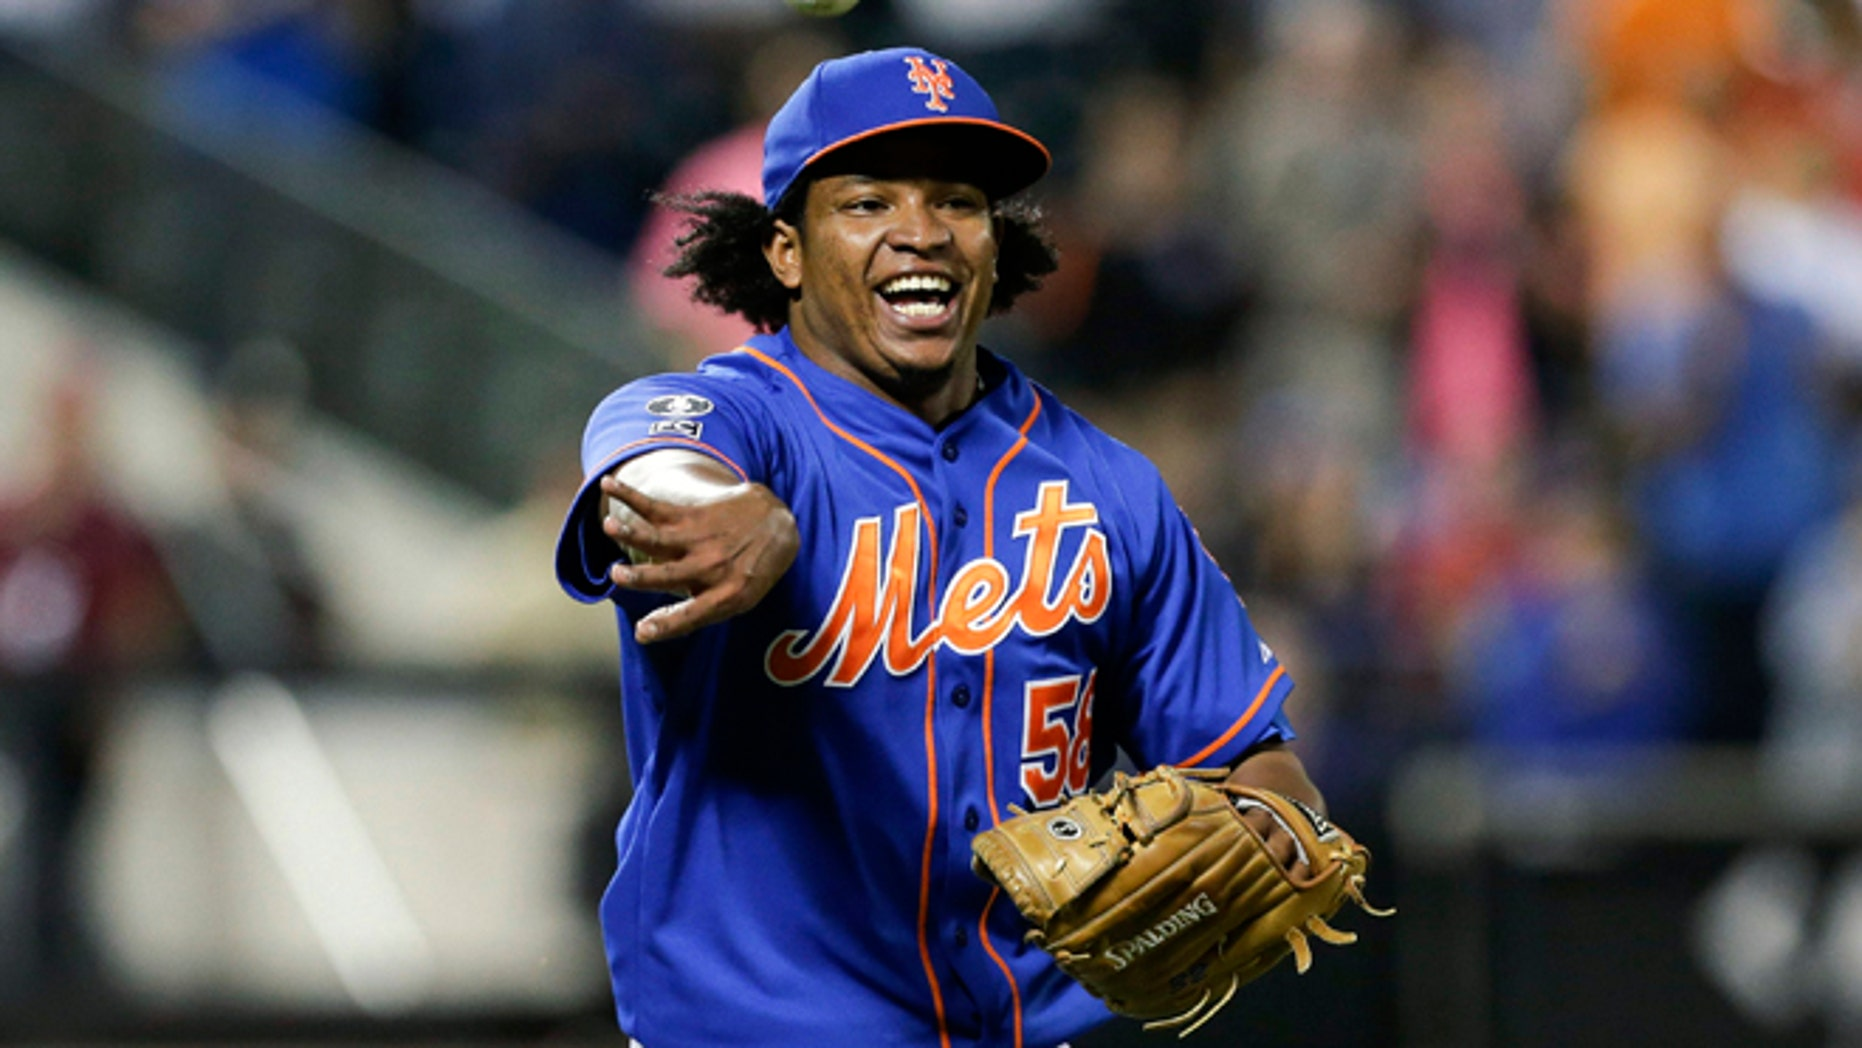 Sept. 10, 2014: New York Mets relief pitcher Jenrry Mejia tosses the ball to throw out Colorado Rockies' Josh Rutledge at first base to end a baseball game in New York. (AP)